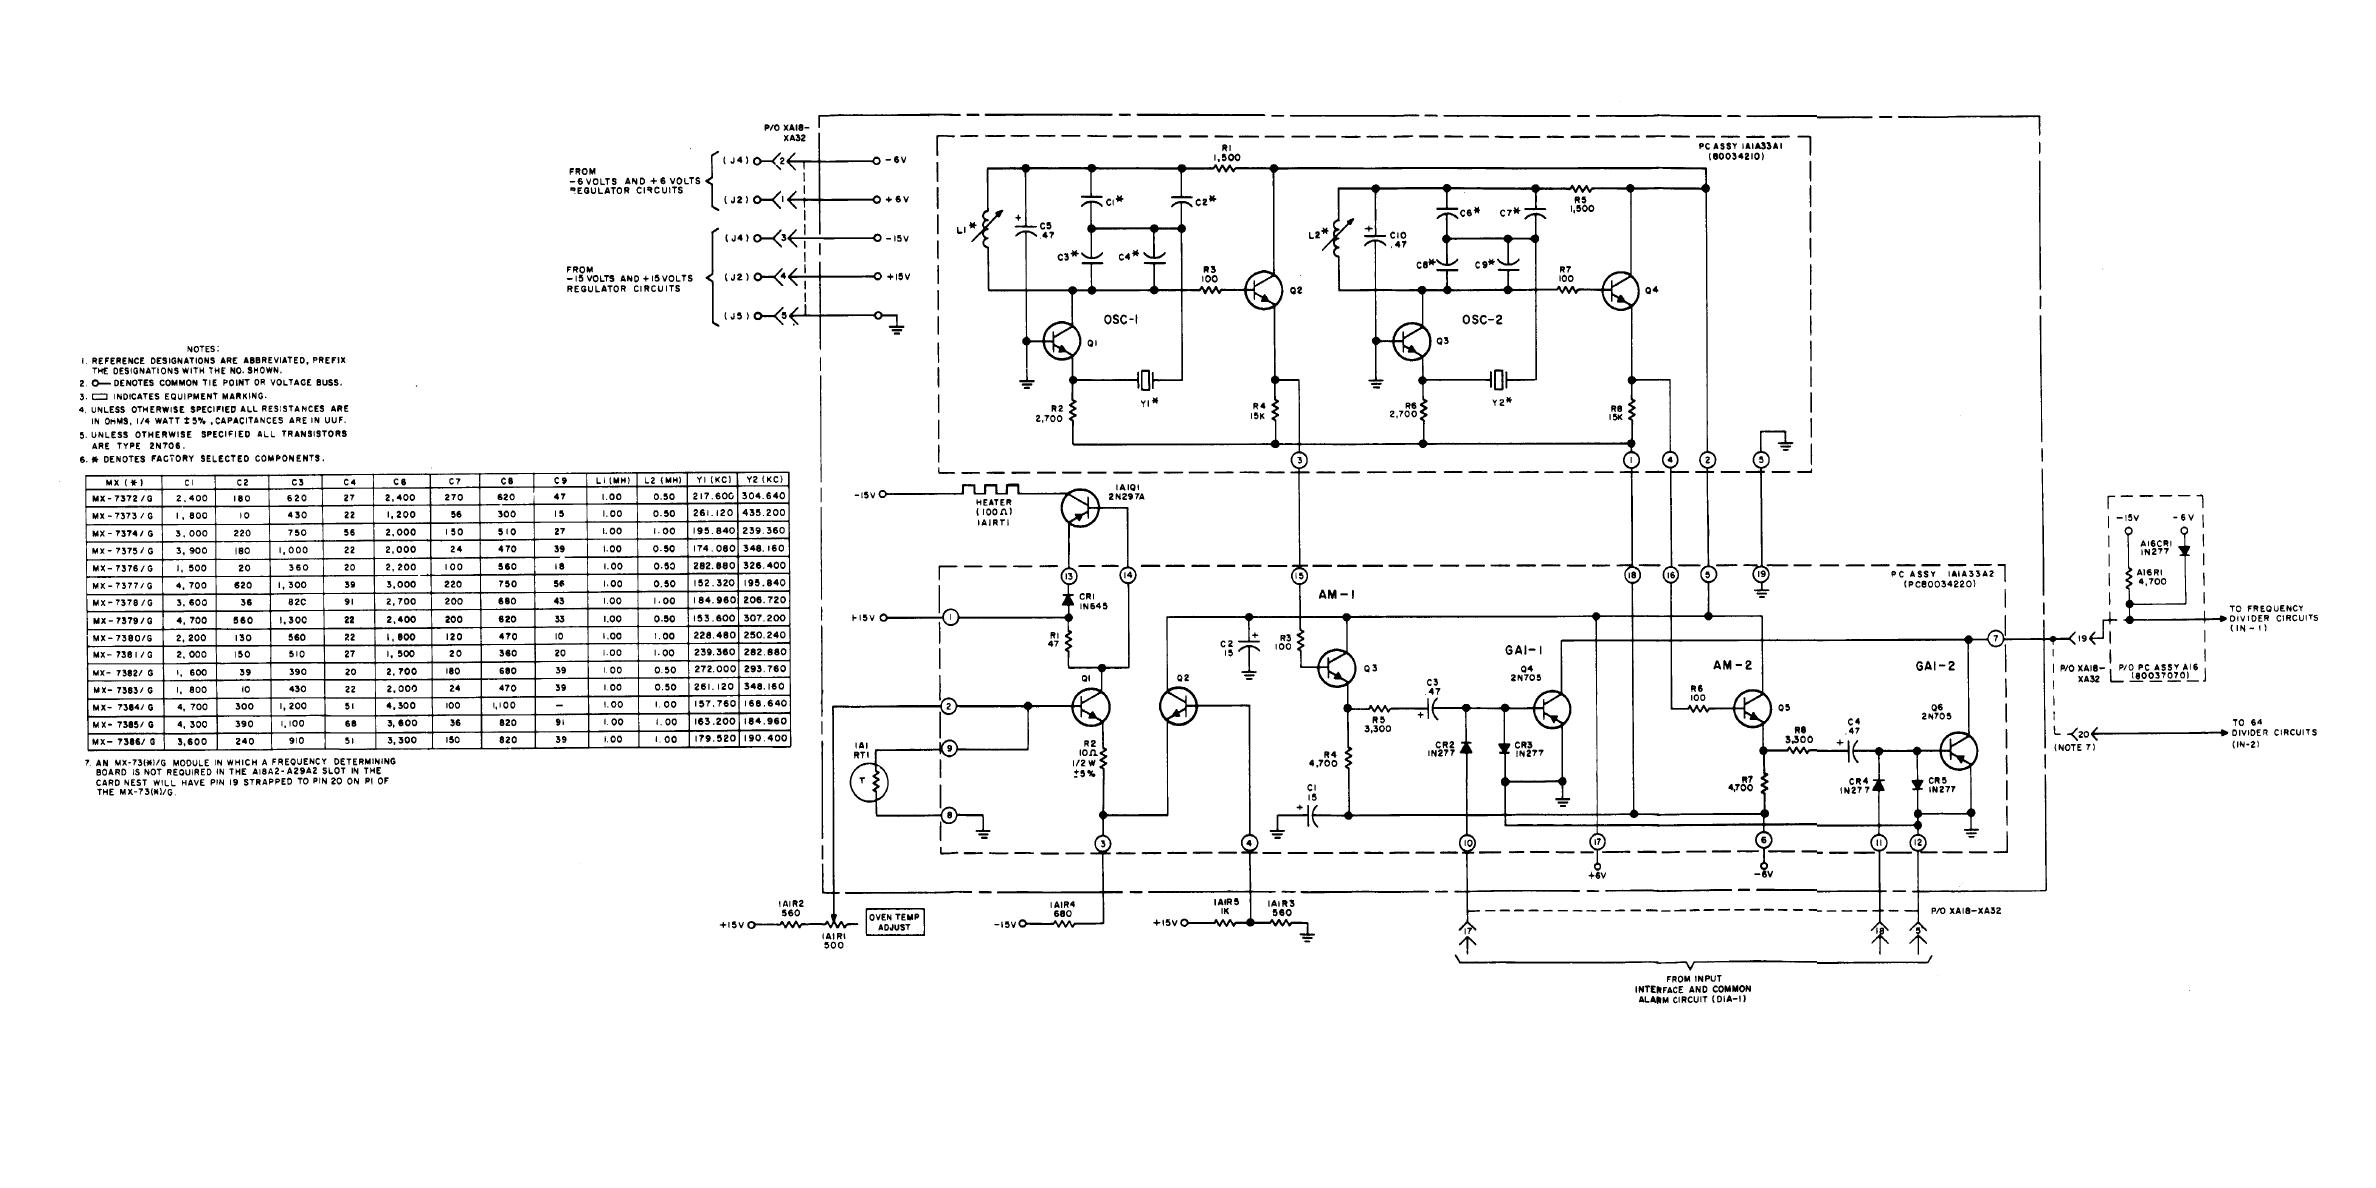 Crystal Oscillator Circuit Page 2 Circuits Picture Of Building The And Regulator